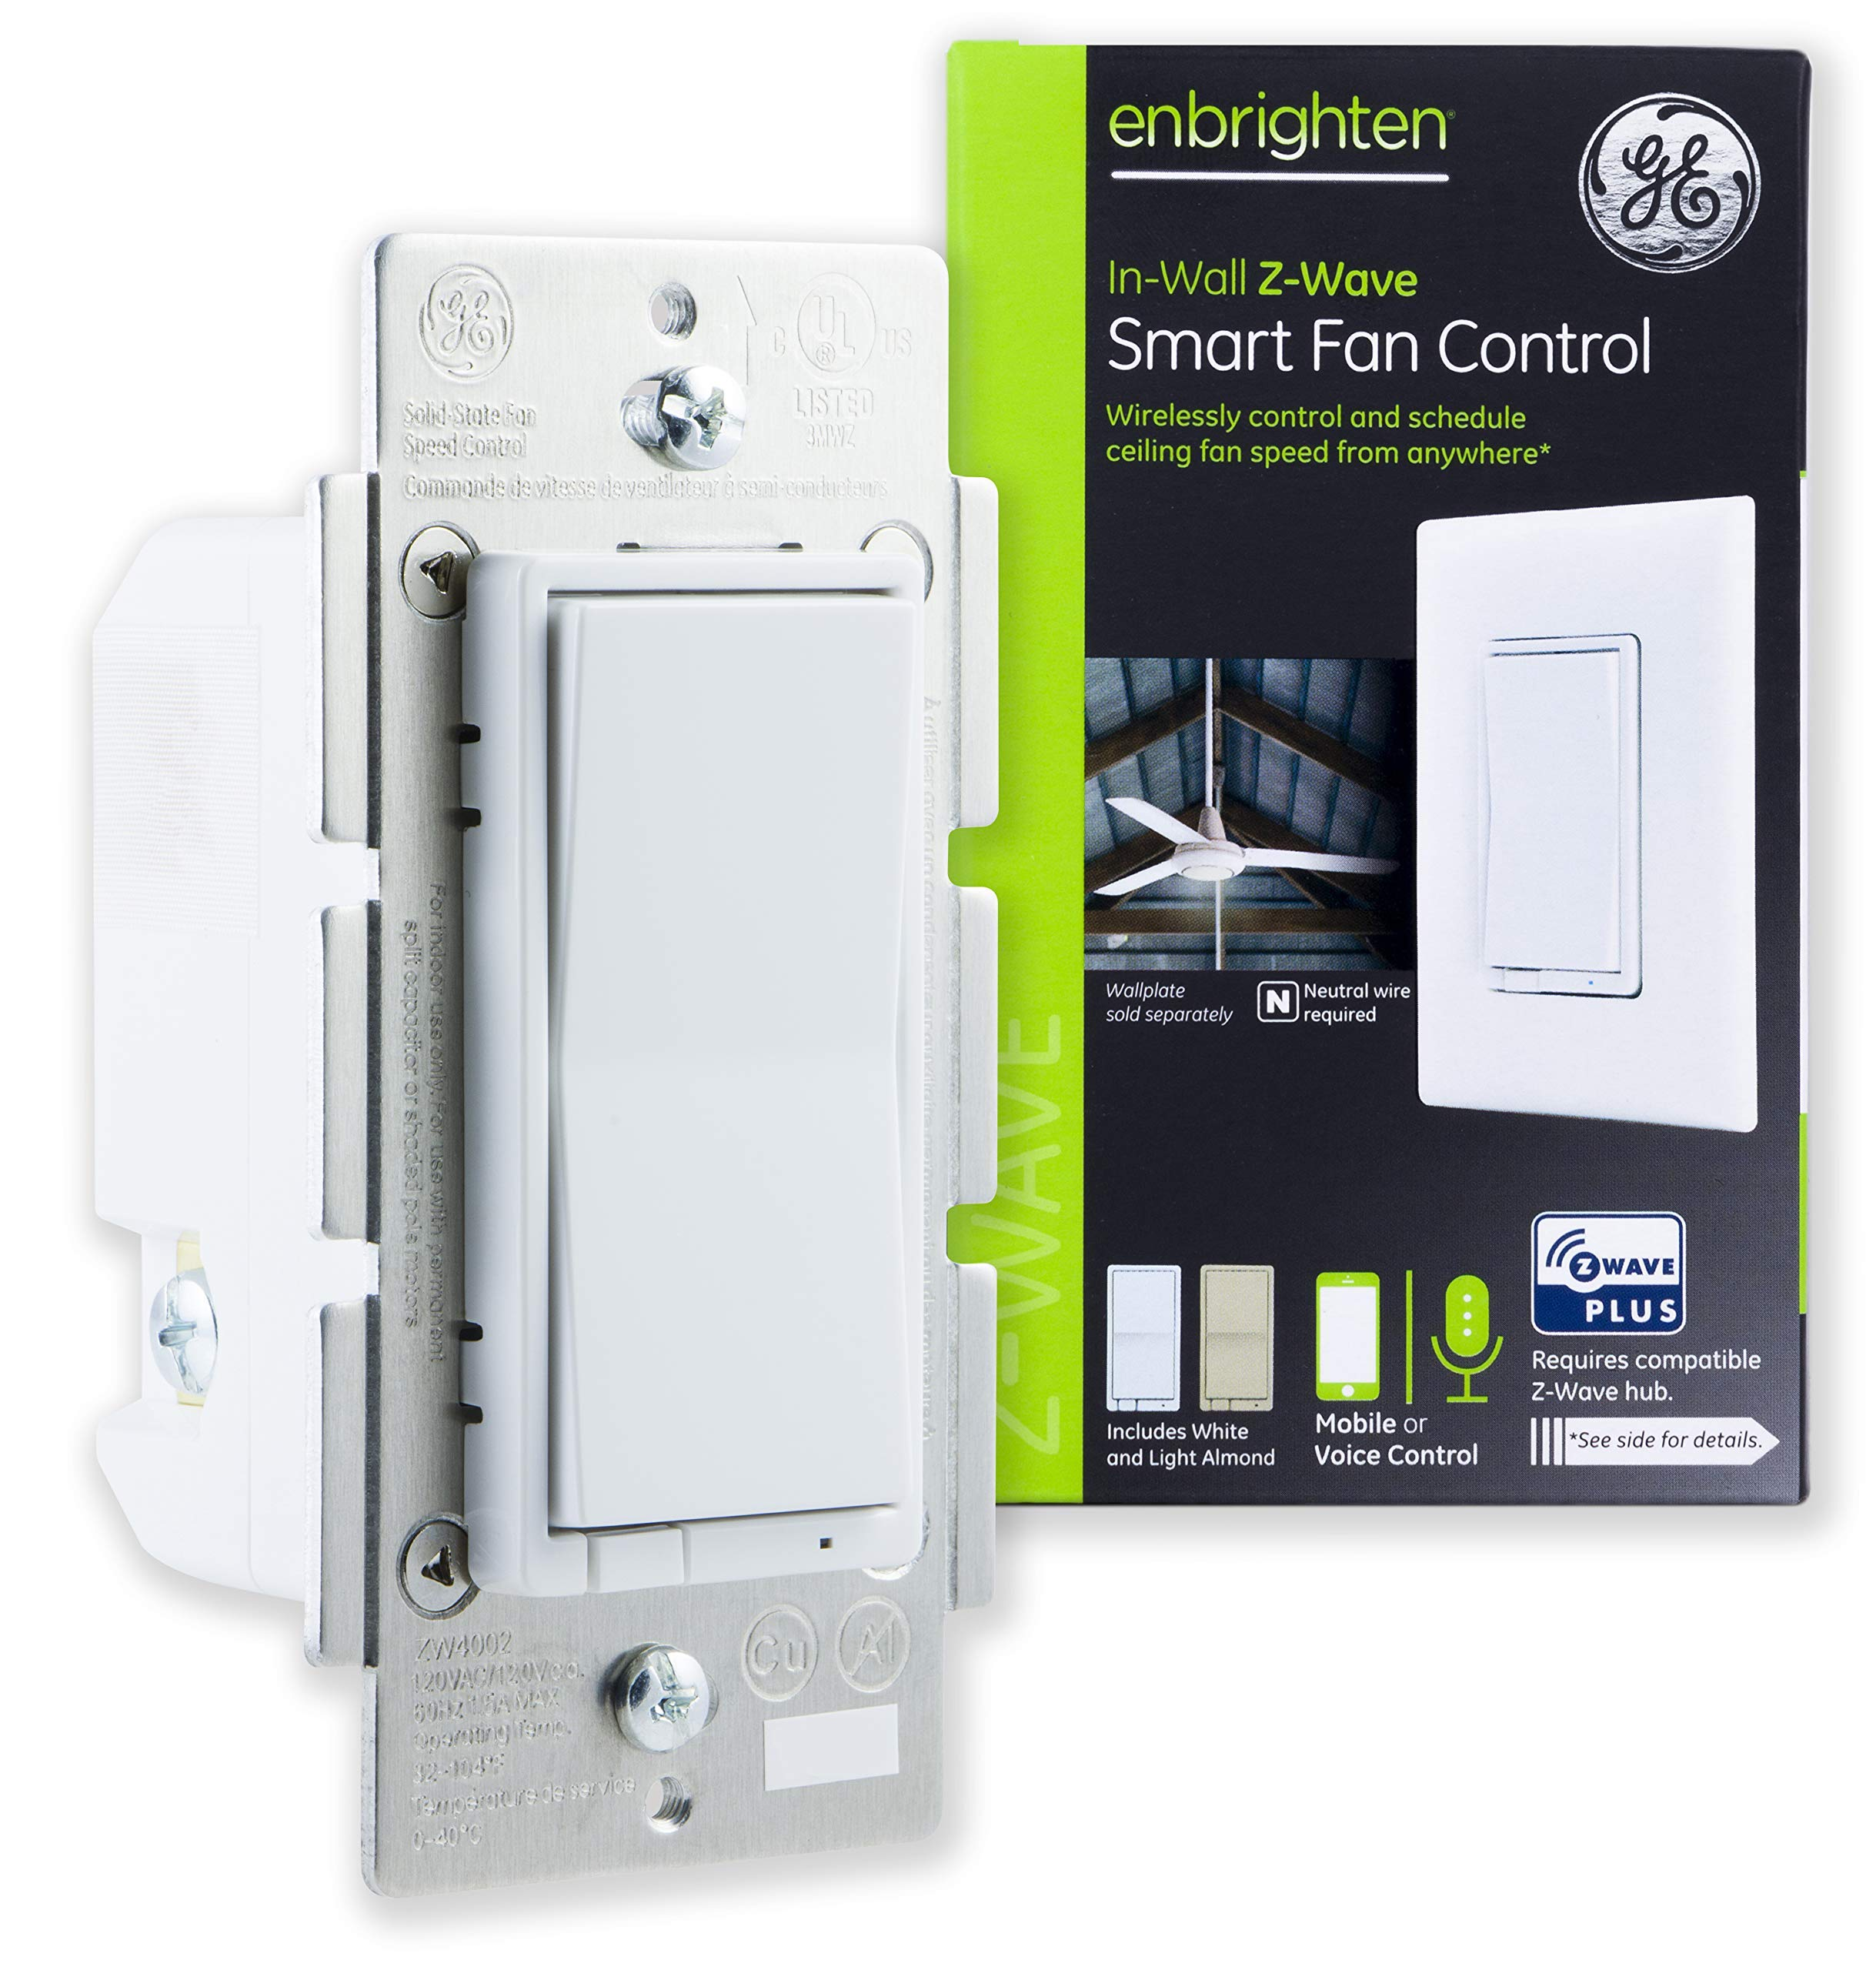 GE Enbrighten Z-Wave Plus Smart Fan Control, Speed ONLY, in-Wall, Includes White & Lt. Almond Paddles, Zwave Hub Required, Works with SmartThings Wink and Alexa, 14287, White | Light (Renewed)